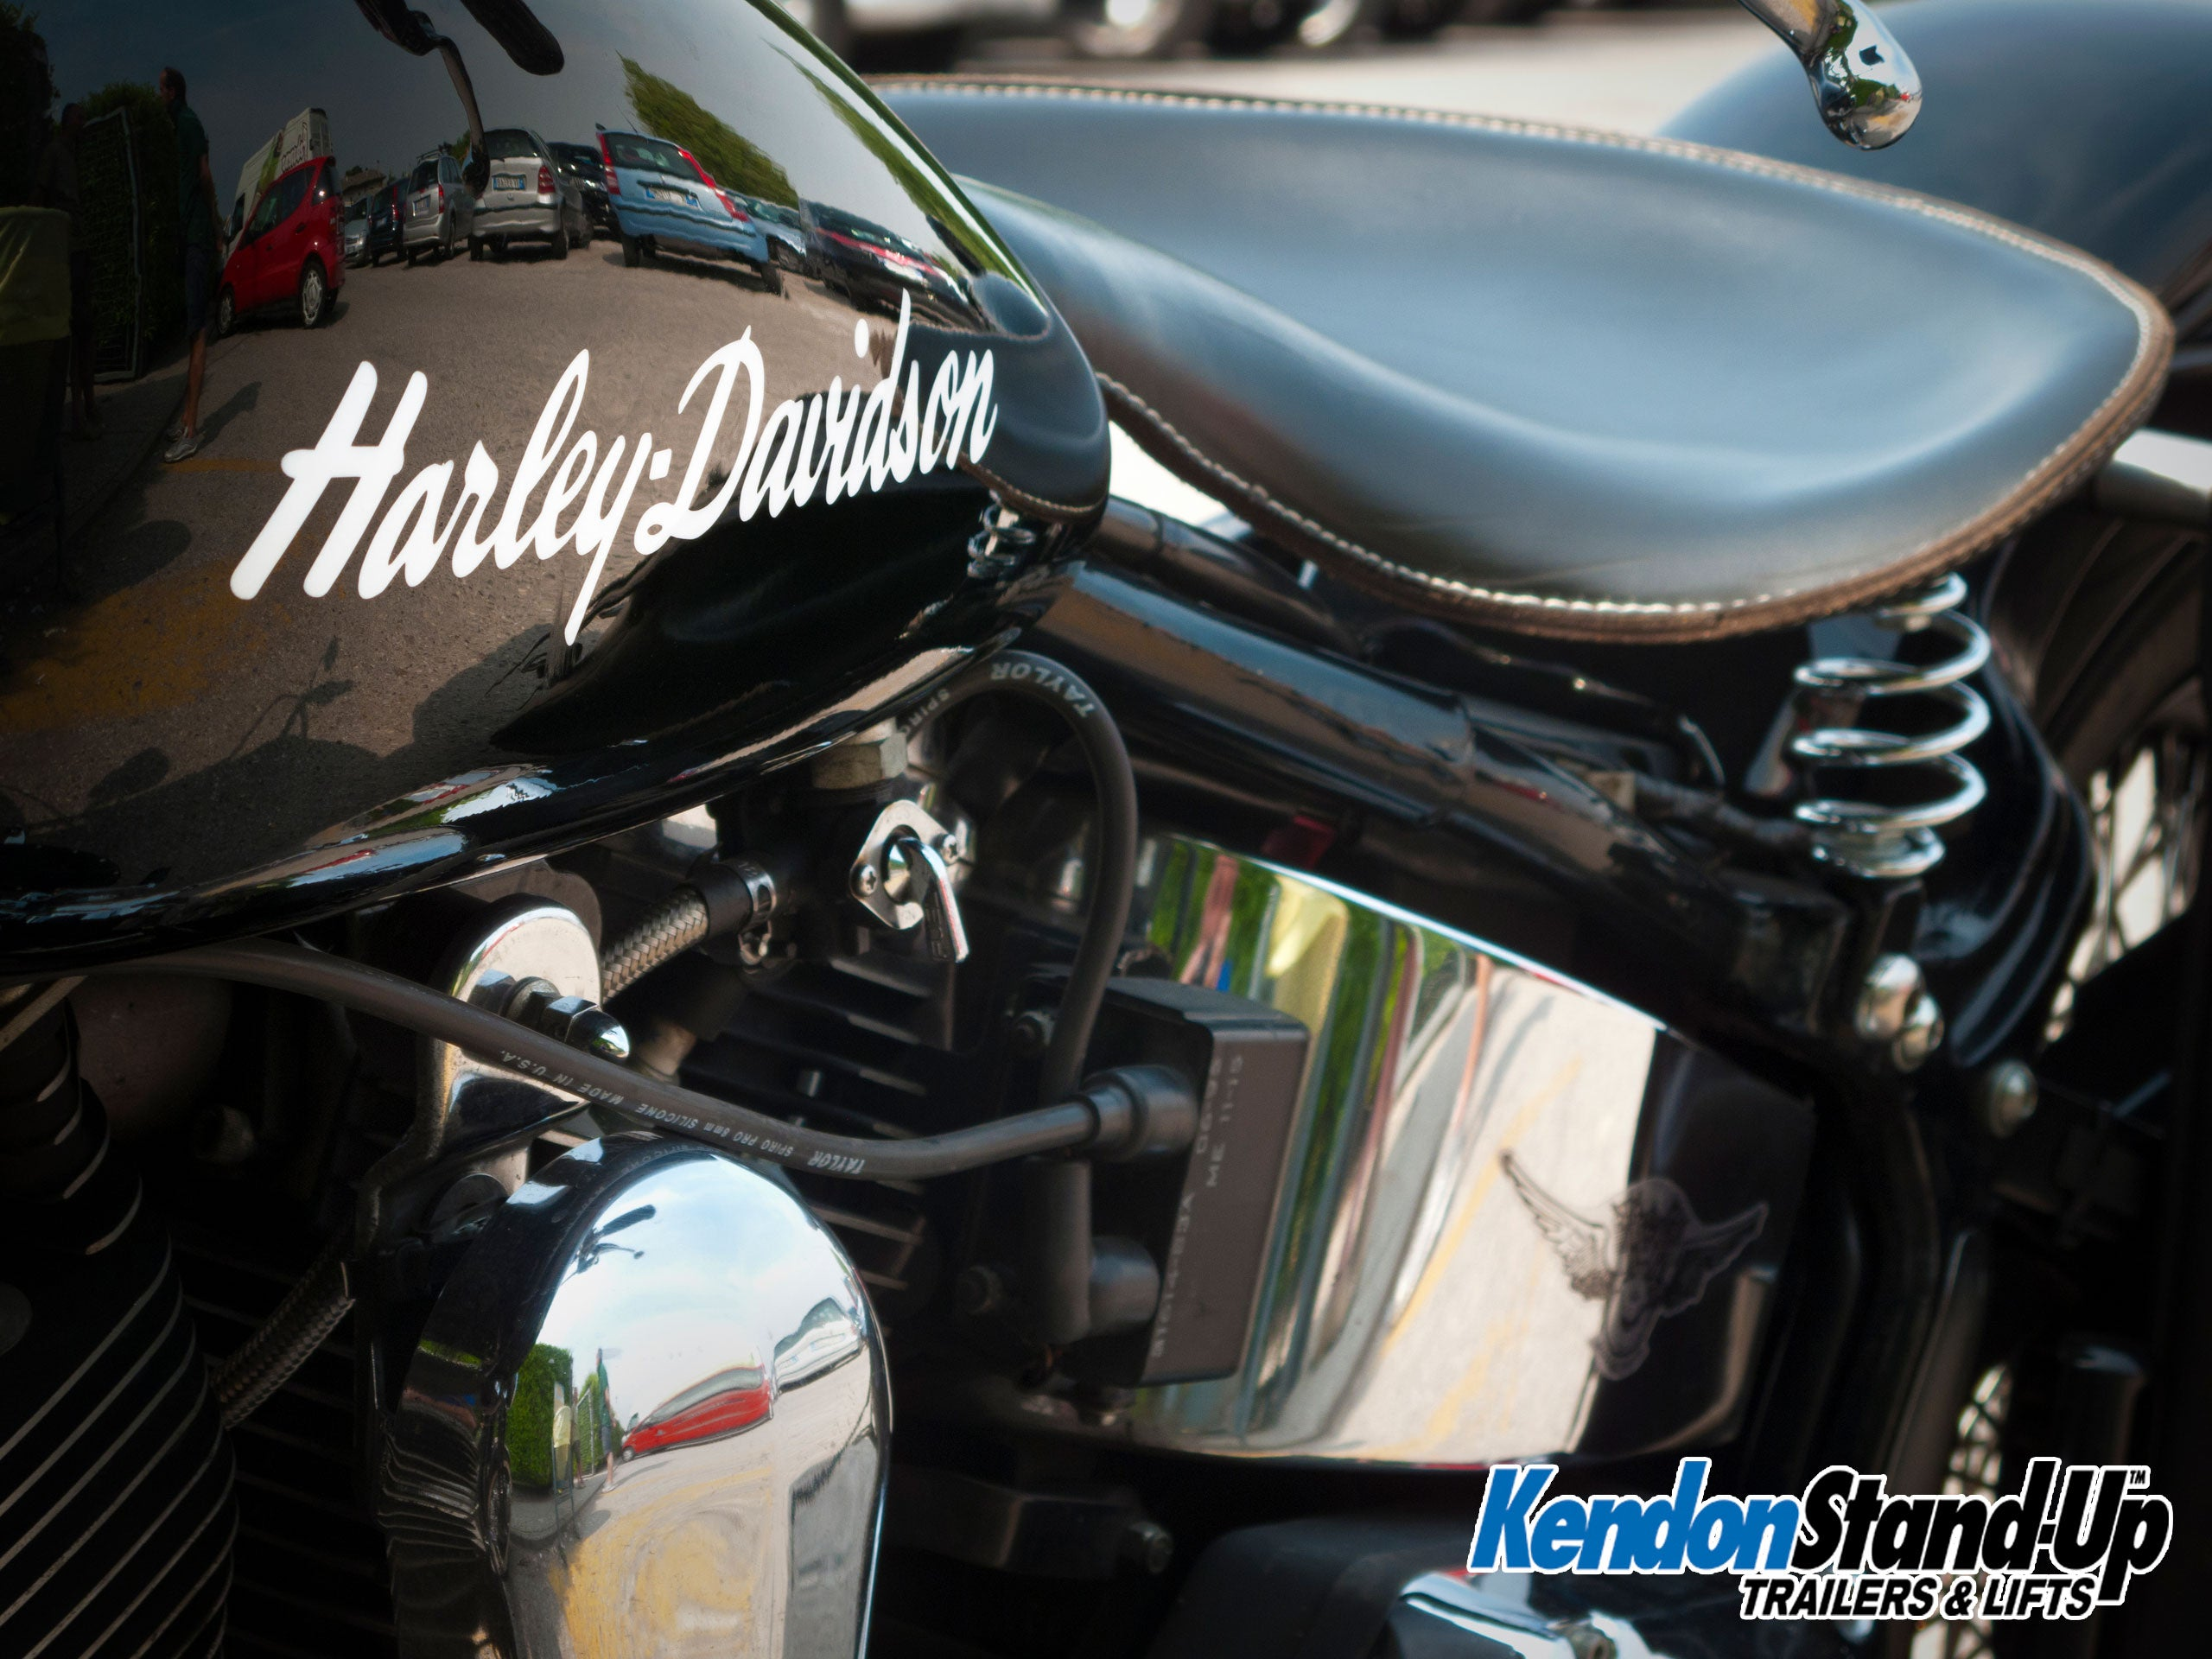 Advantages of Using a Kendon Trailer with Your Harley Davidson